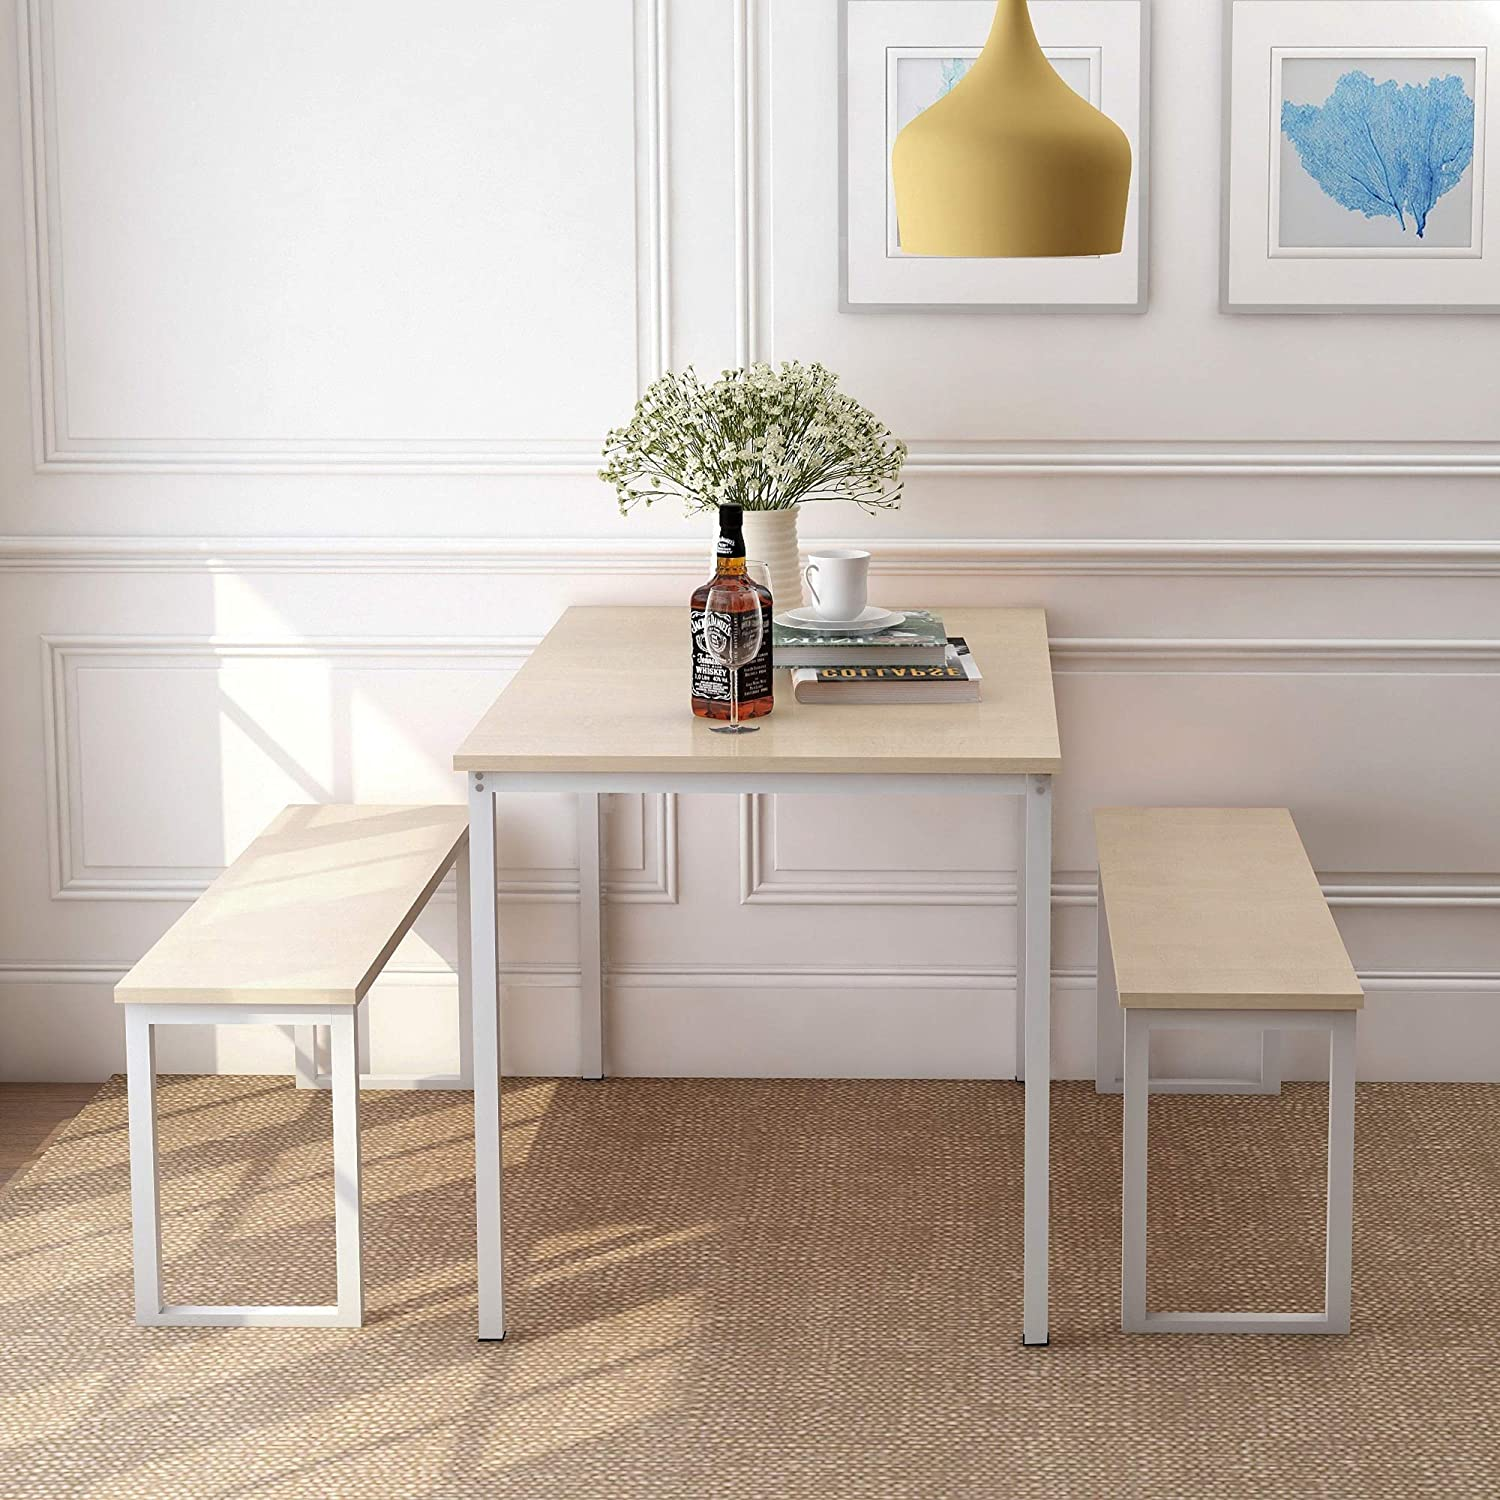 Harper Bright Designs 3 quality assurance All items in the store Pieces Dining Set with Table Benches 2